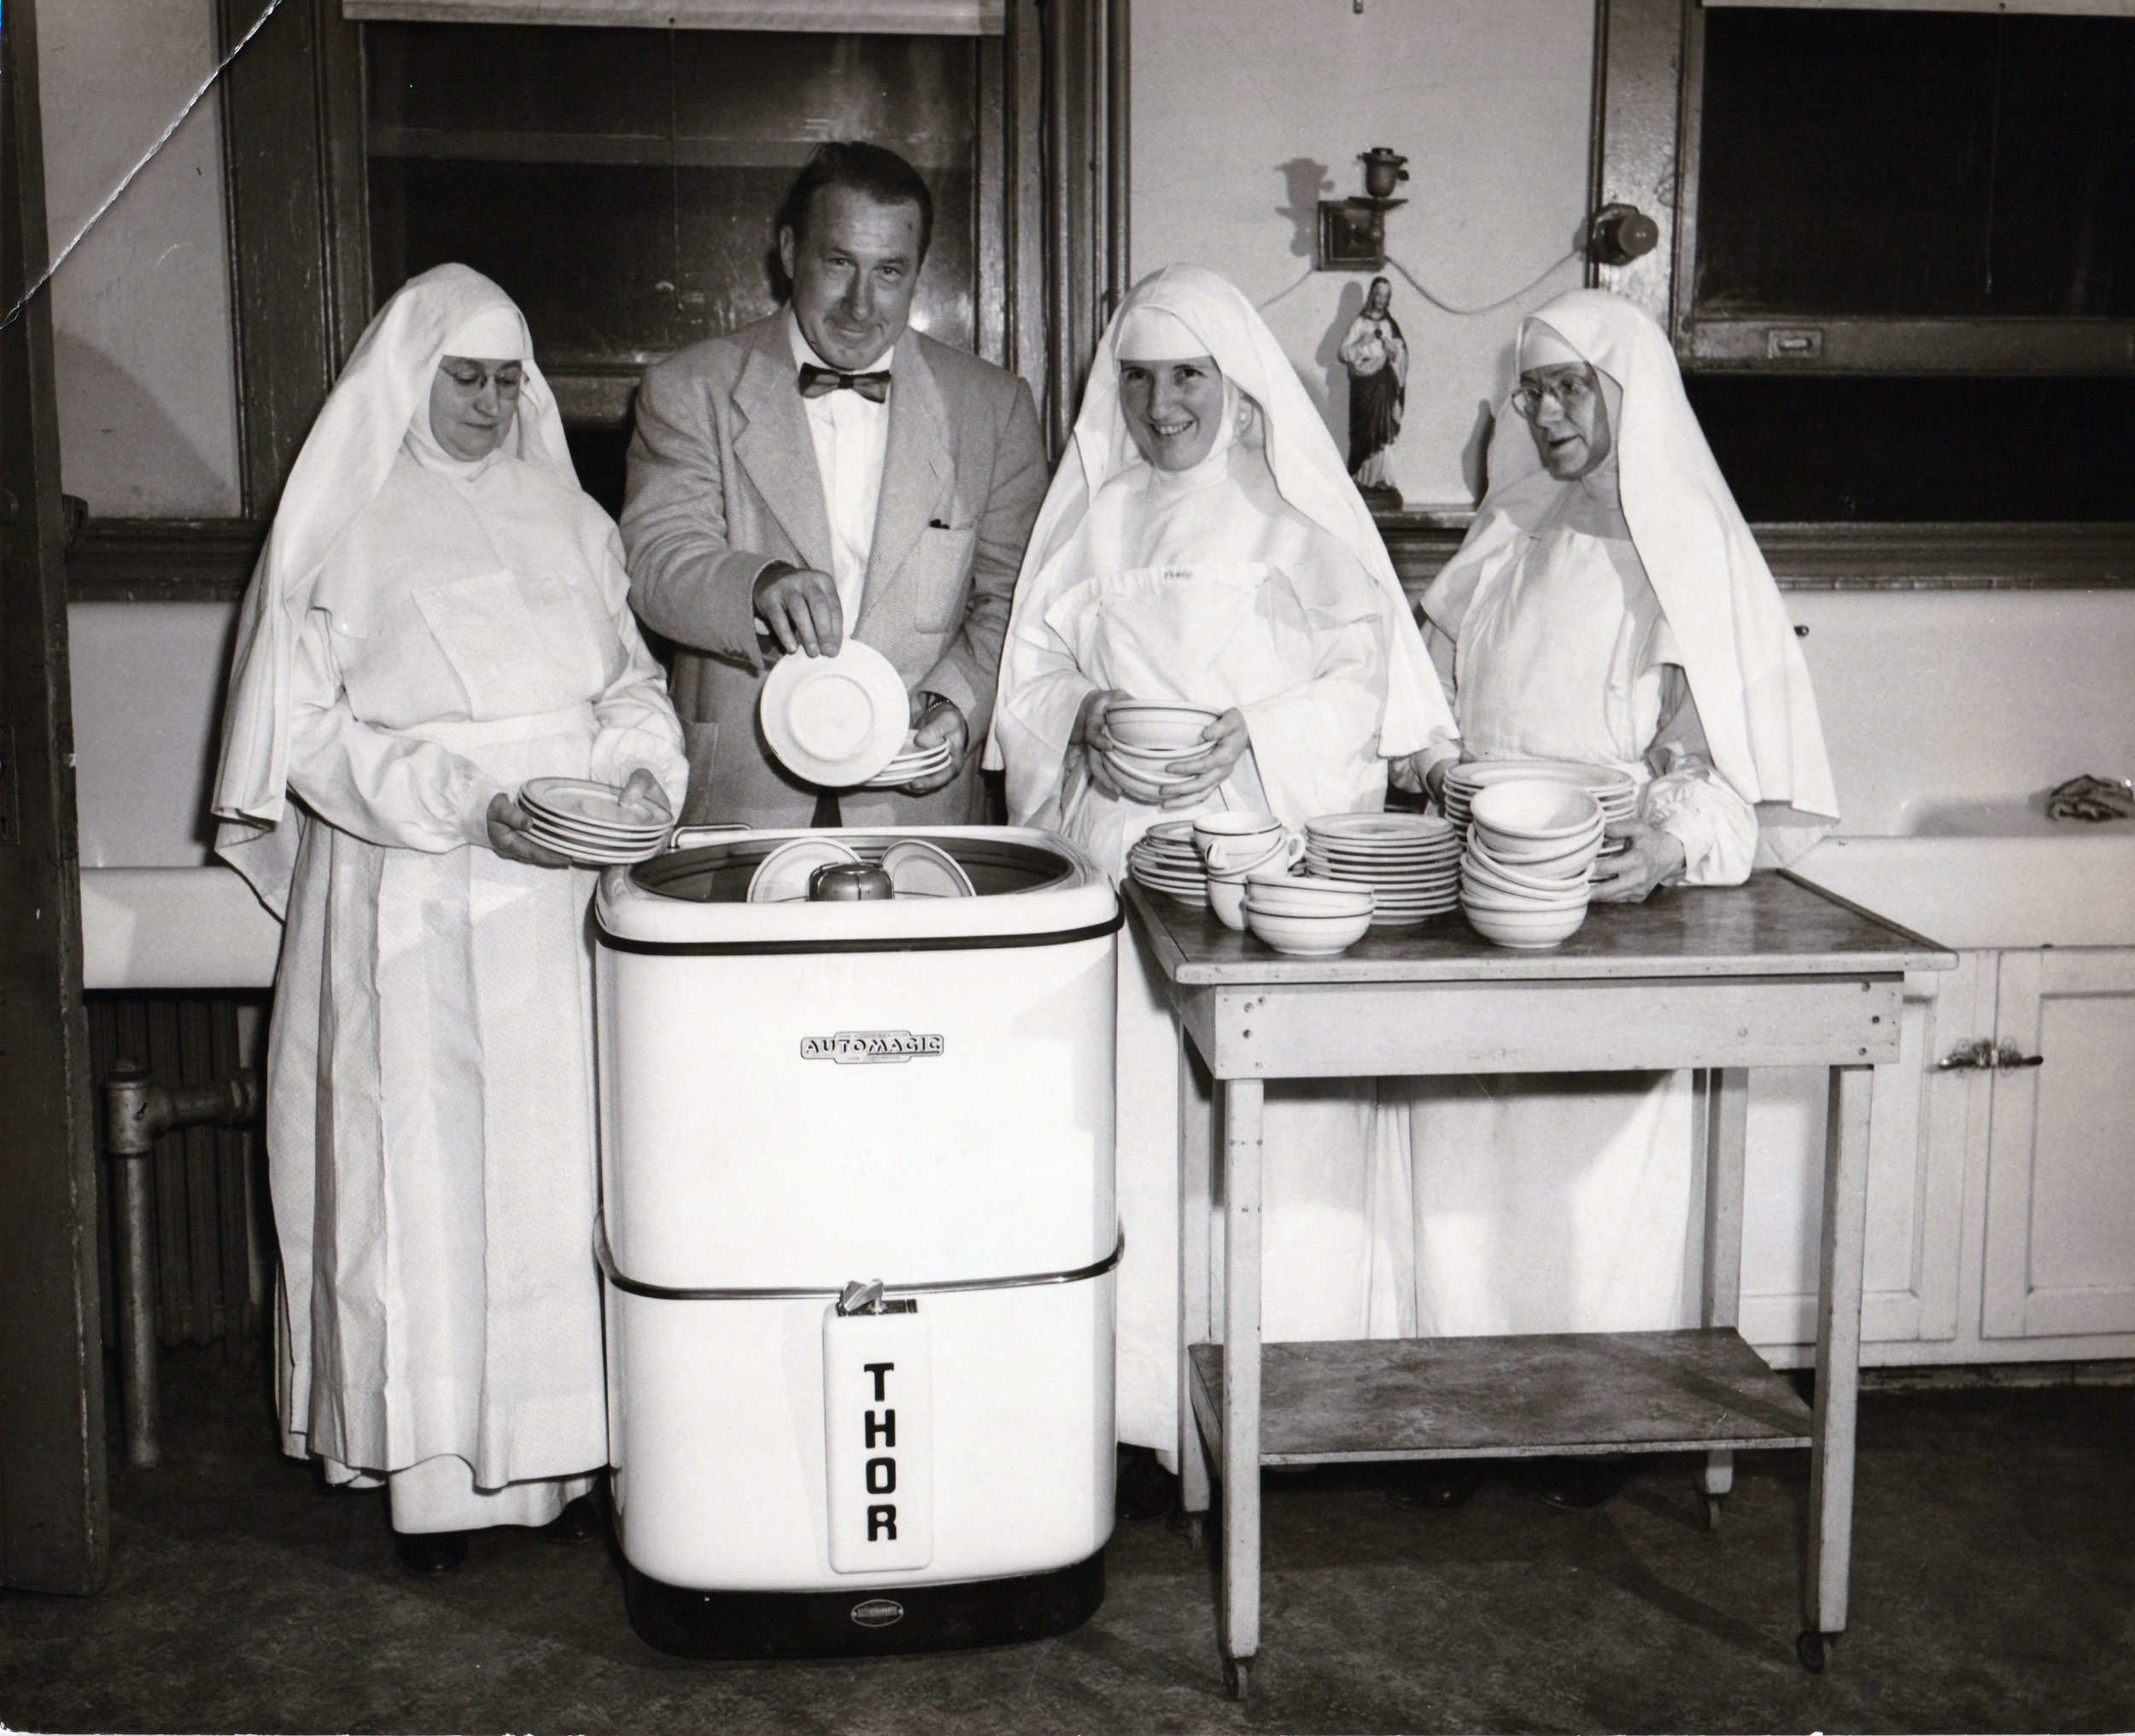 extern sisters dominican nuns dishwasher.jpg